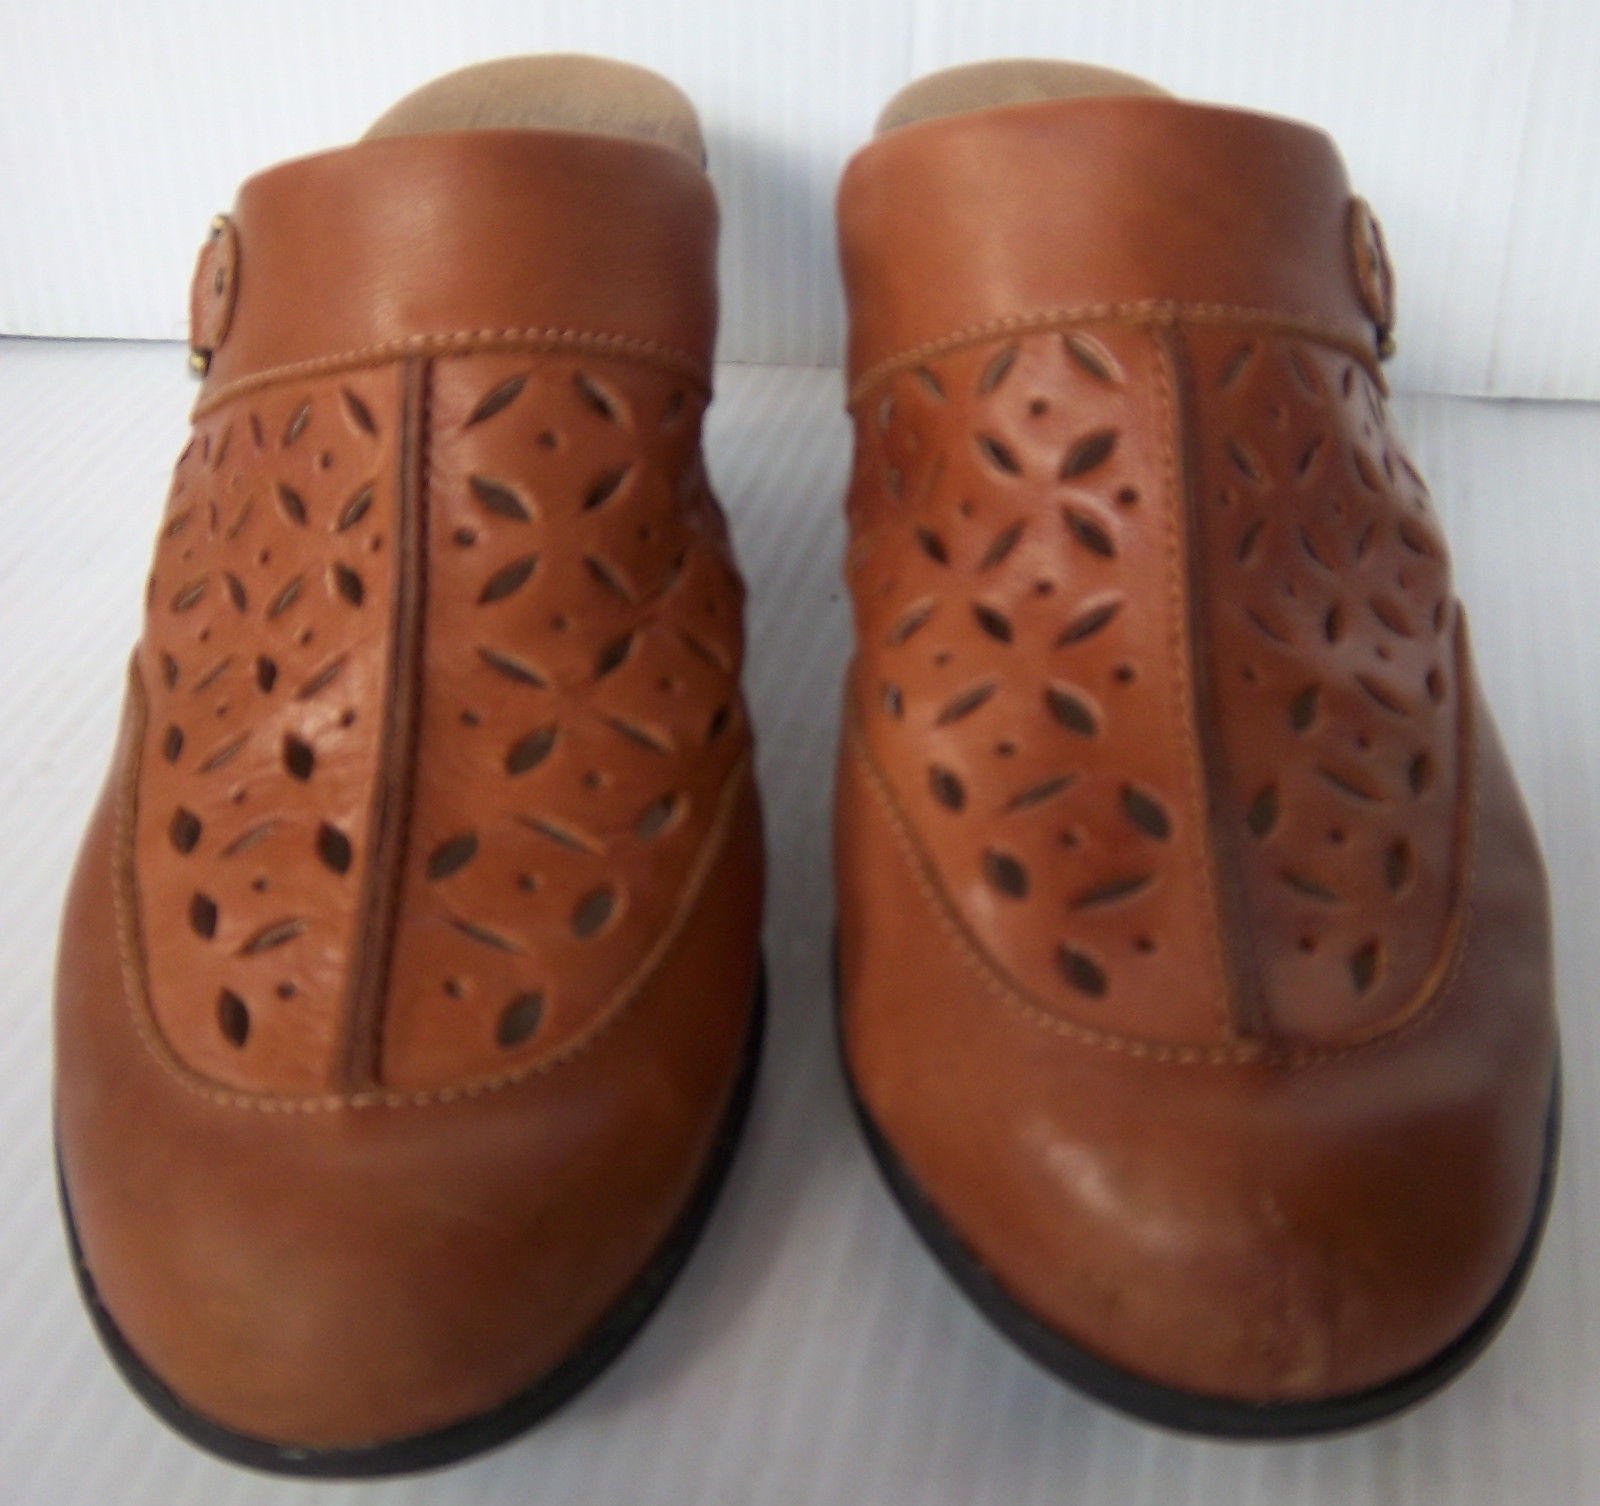 160e12ee656 S l1600. S l1600. Previous. Women s Clarks Bendables  85674 Brown Leather  Slip On Mules Shoes -- Size ...